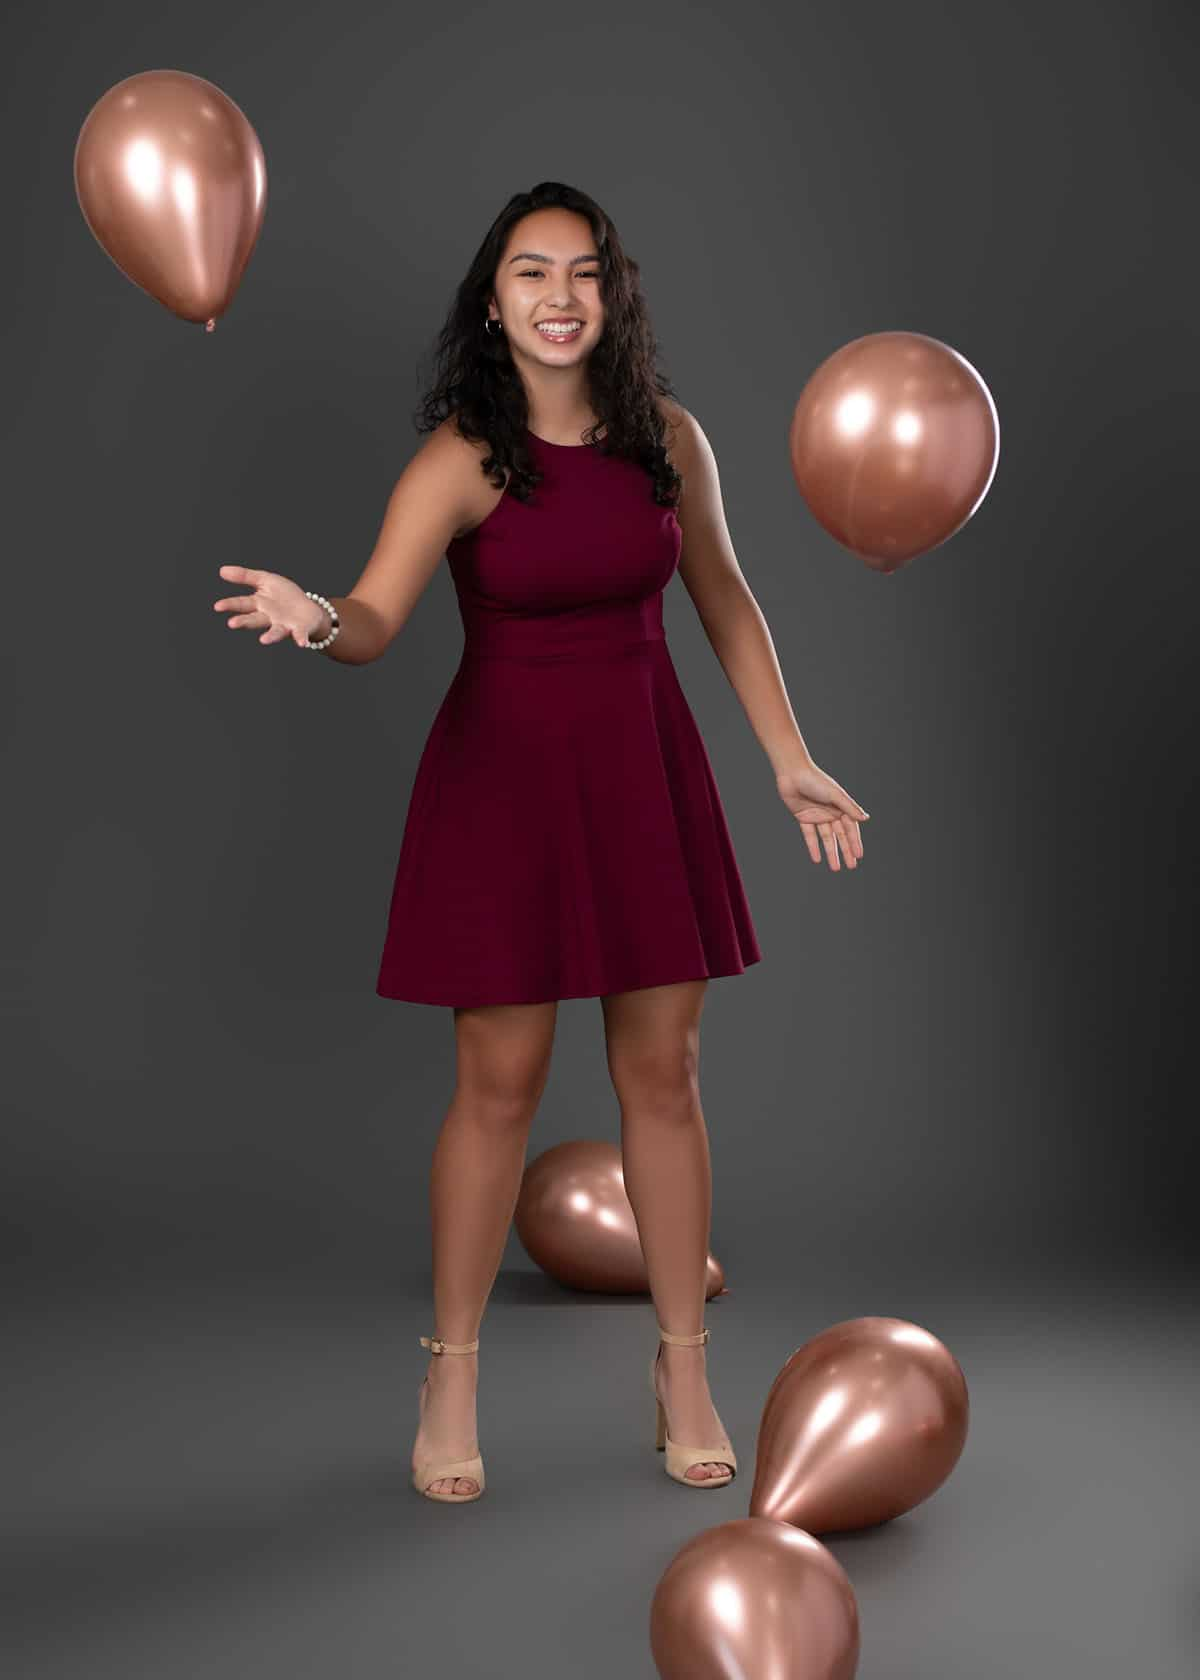 in studio photoshoot senior girl in maroon dress with balloons on gray background